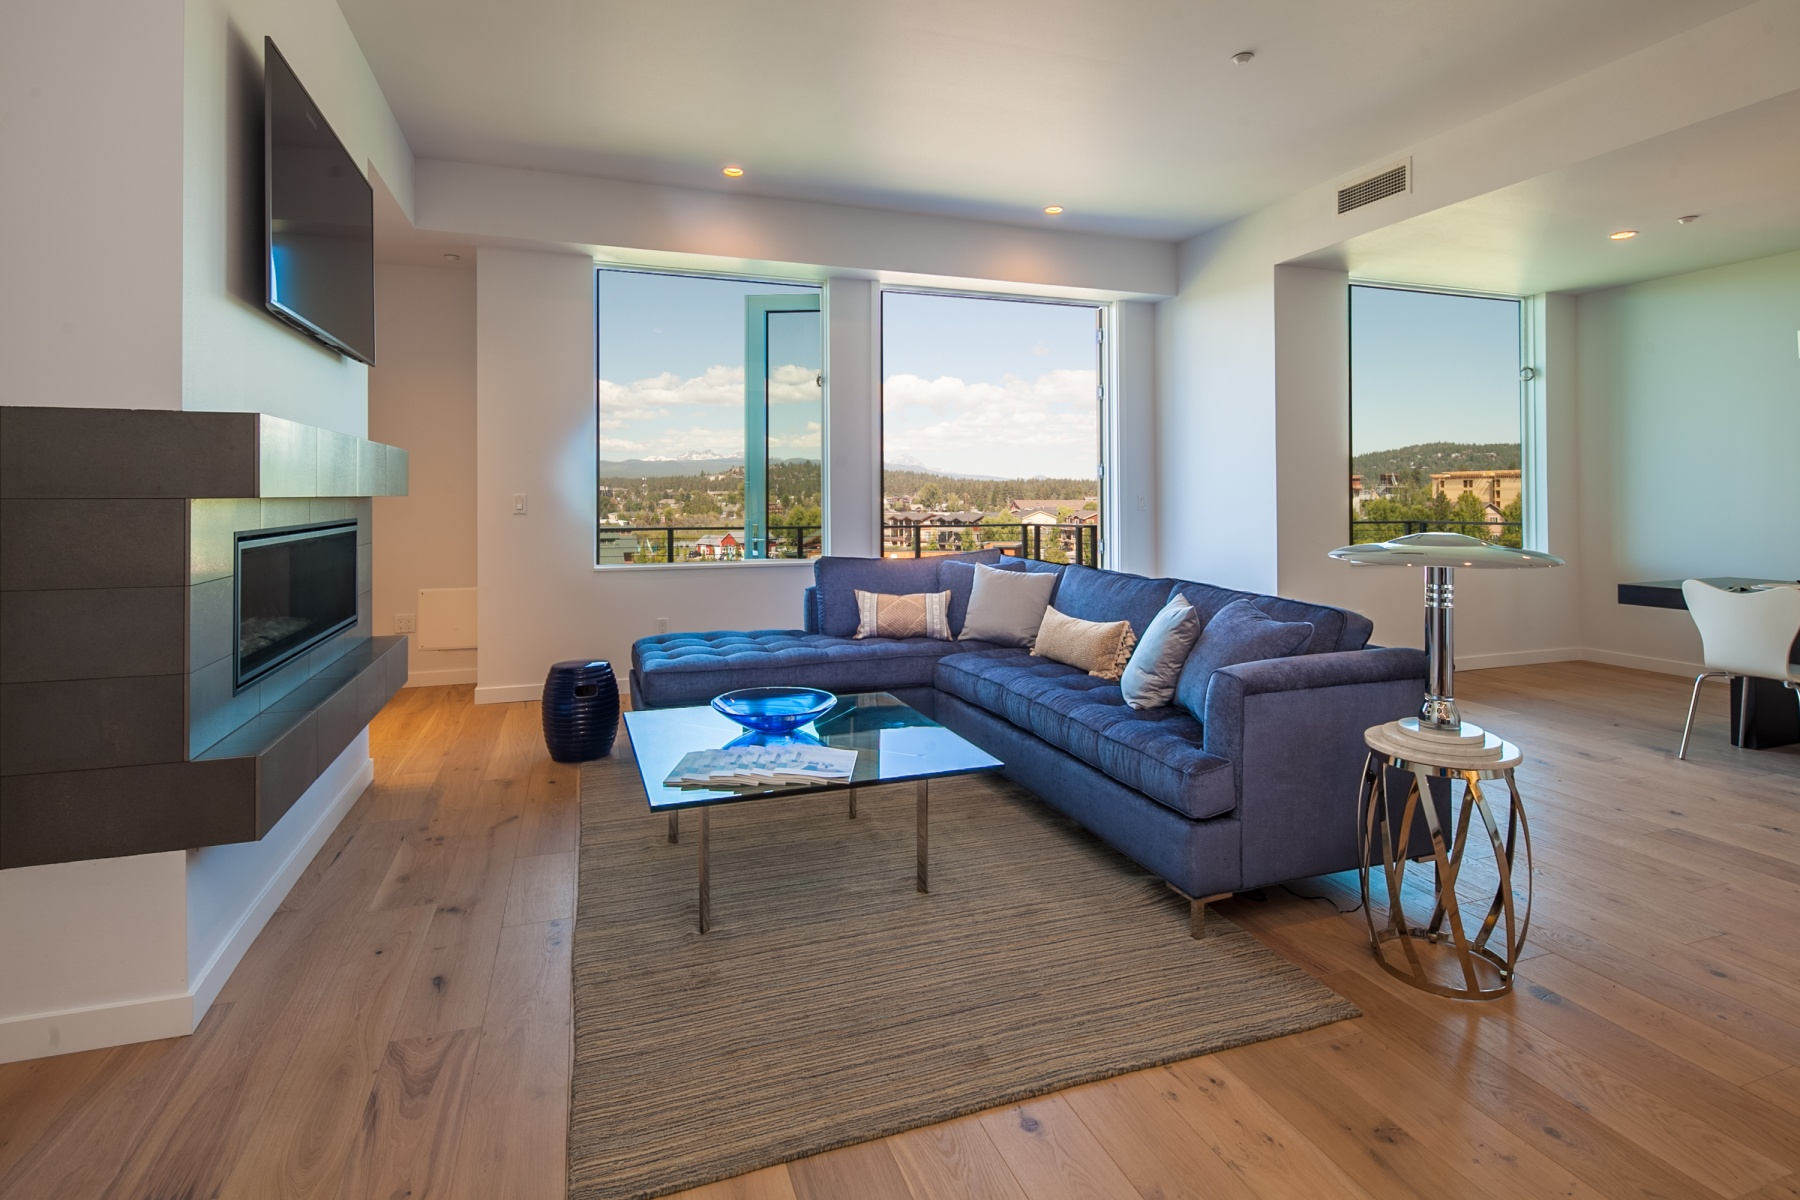 sales property at 291 SW Bluff #220, BEND